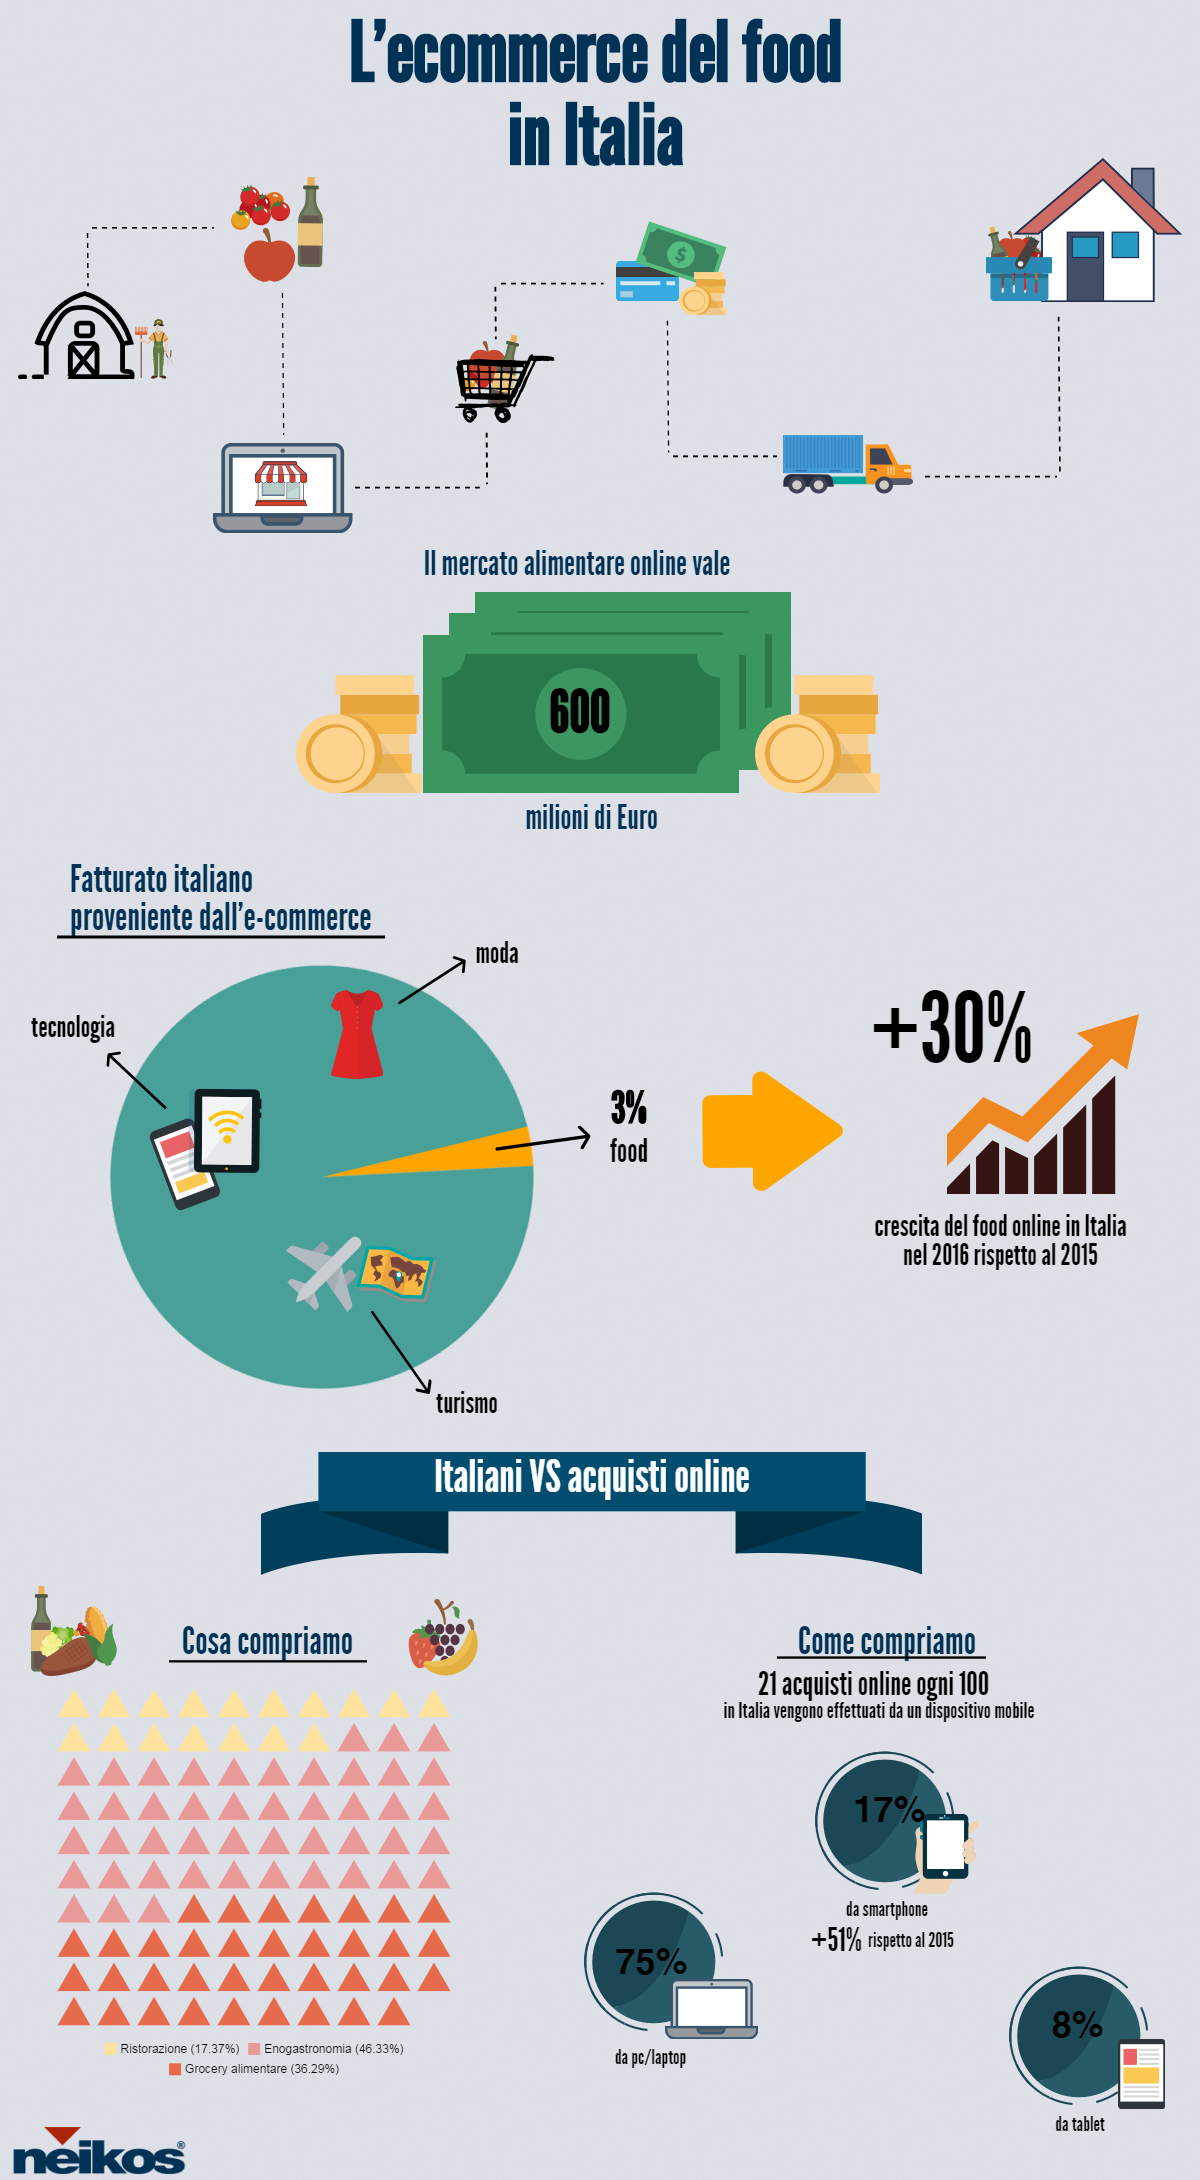 L'ecommerce del food in Italia